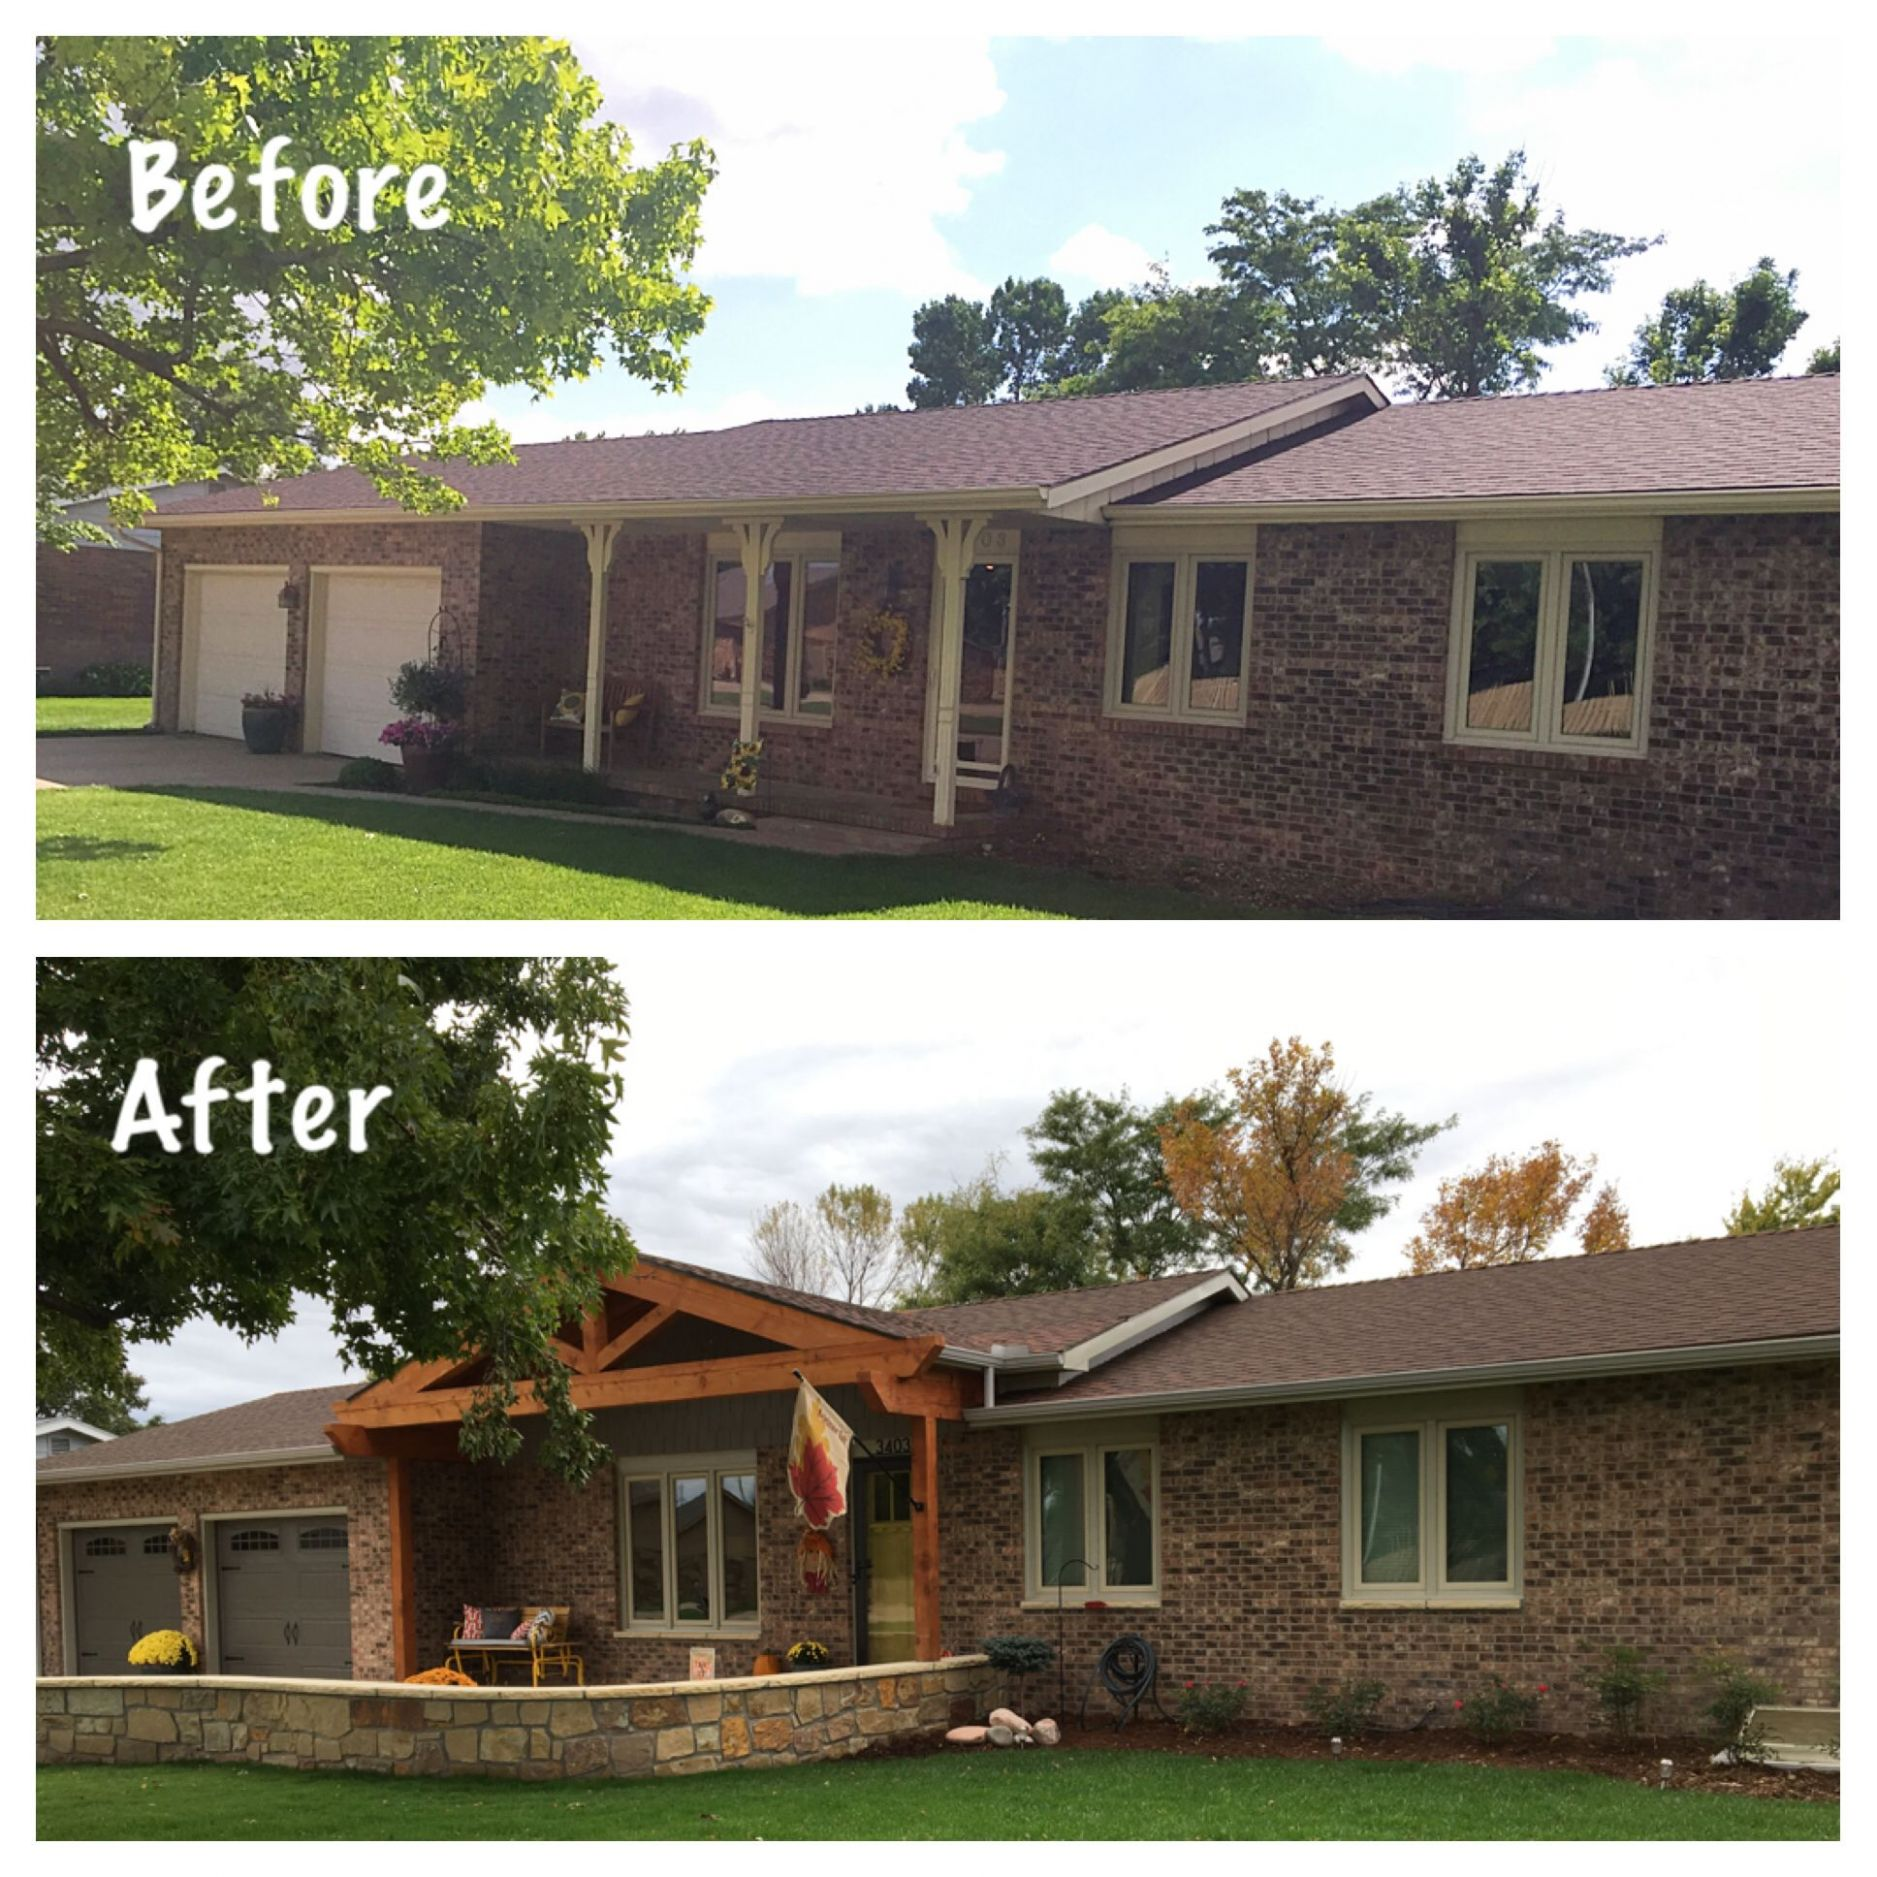 11's before and after Ranch style exterior update | Ranch house ...